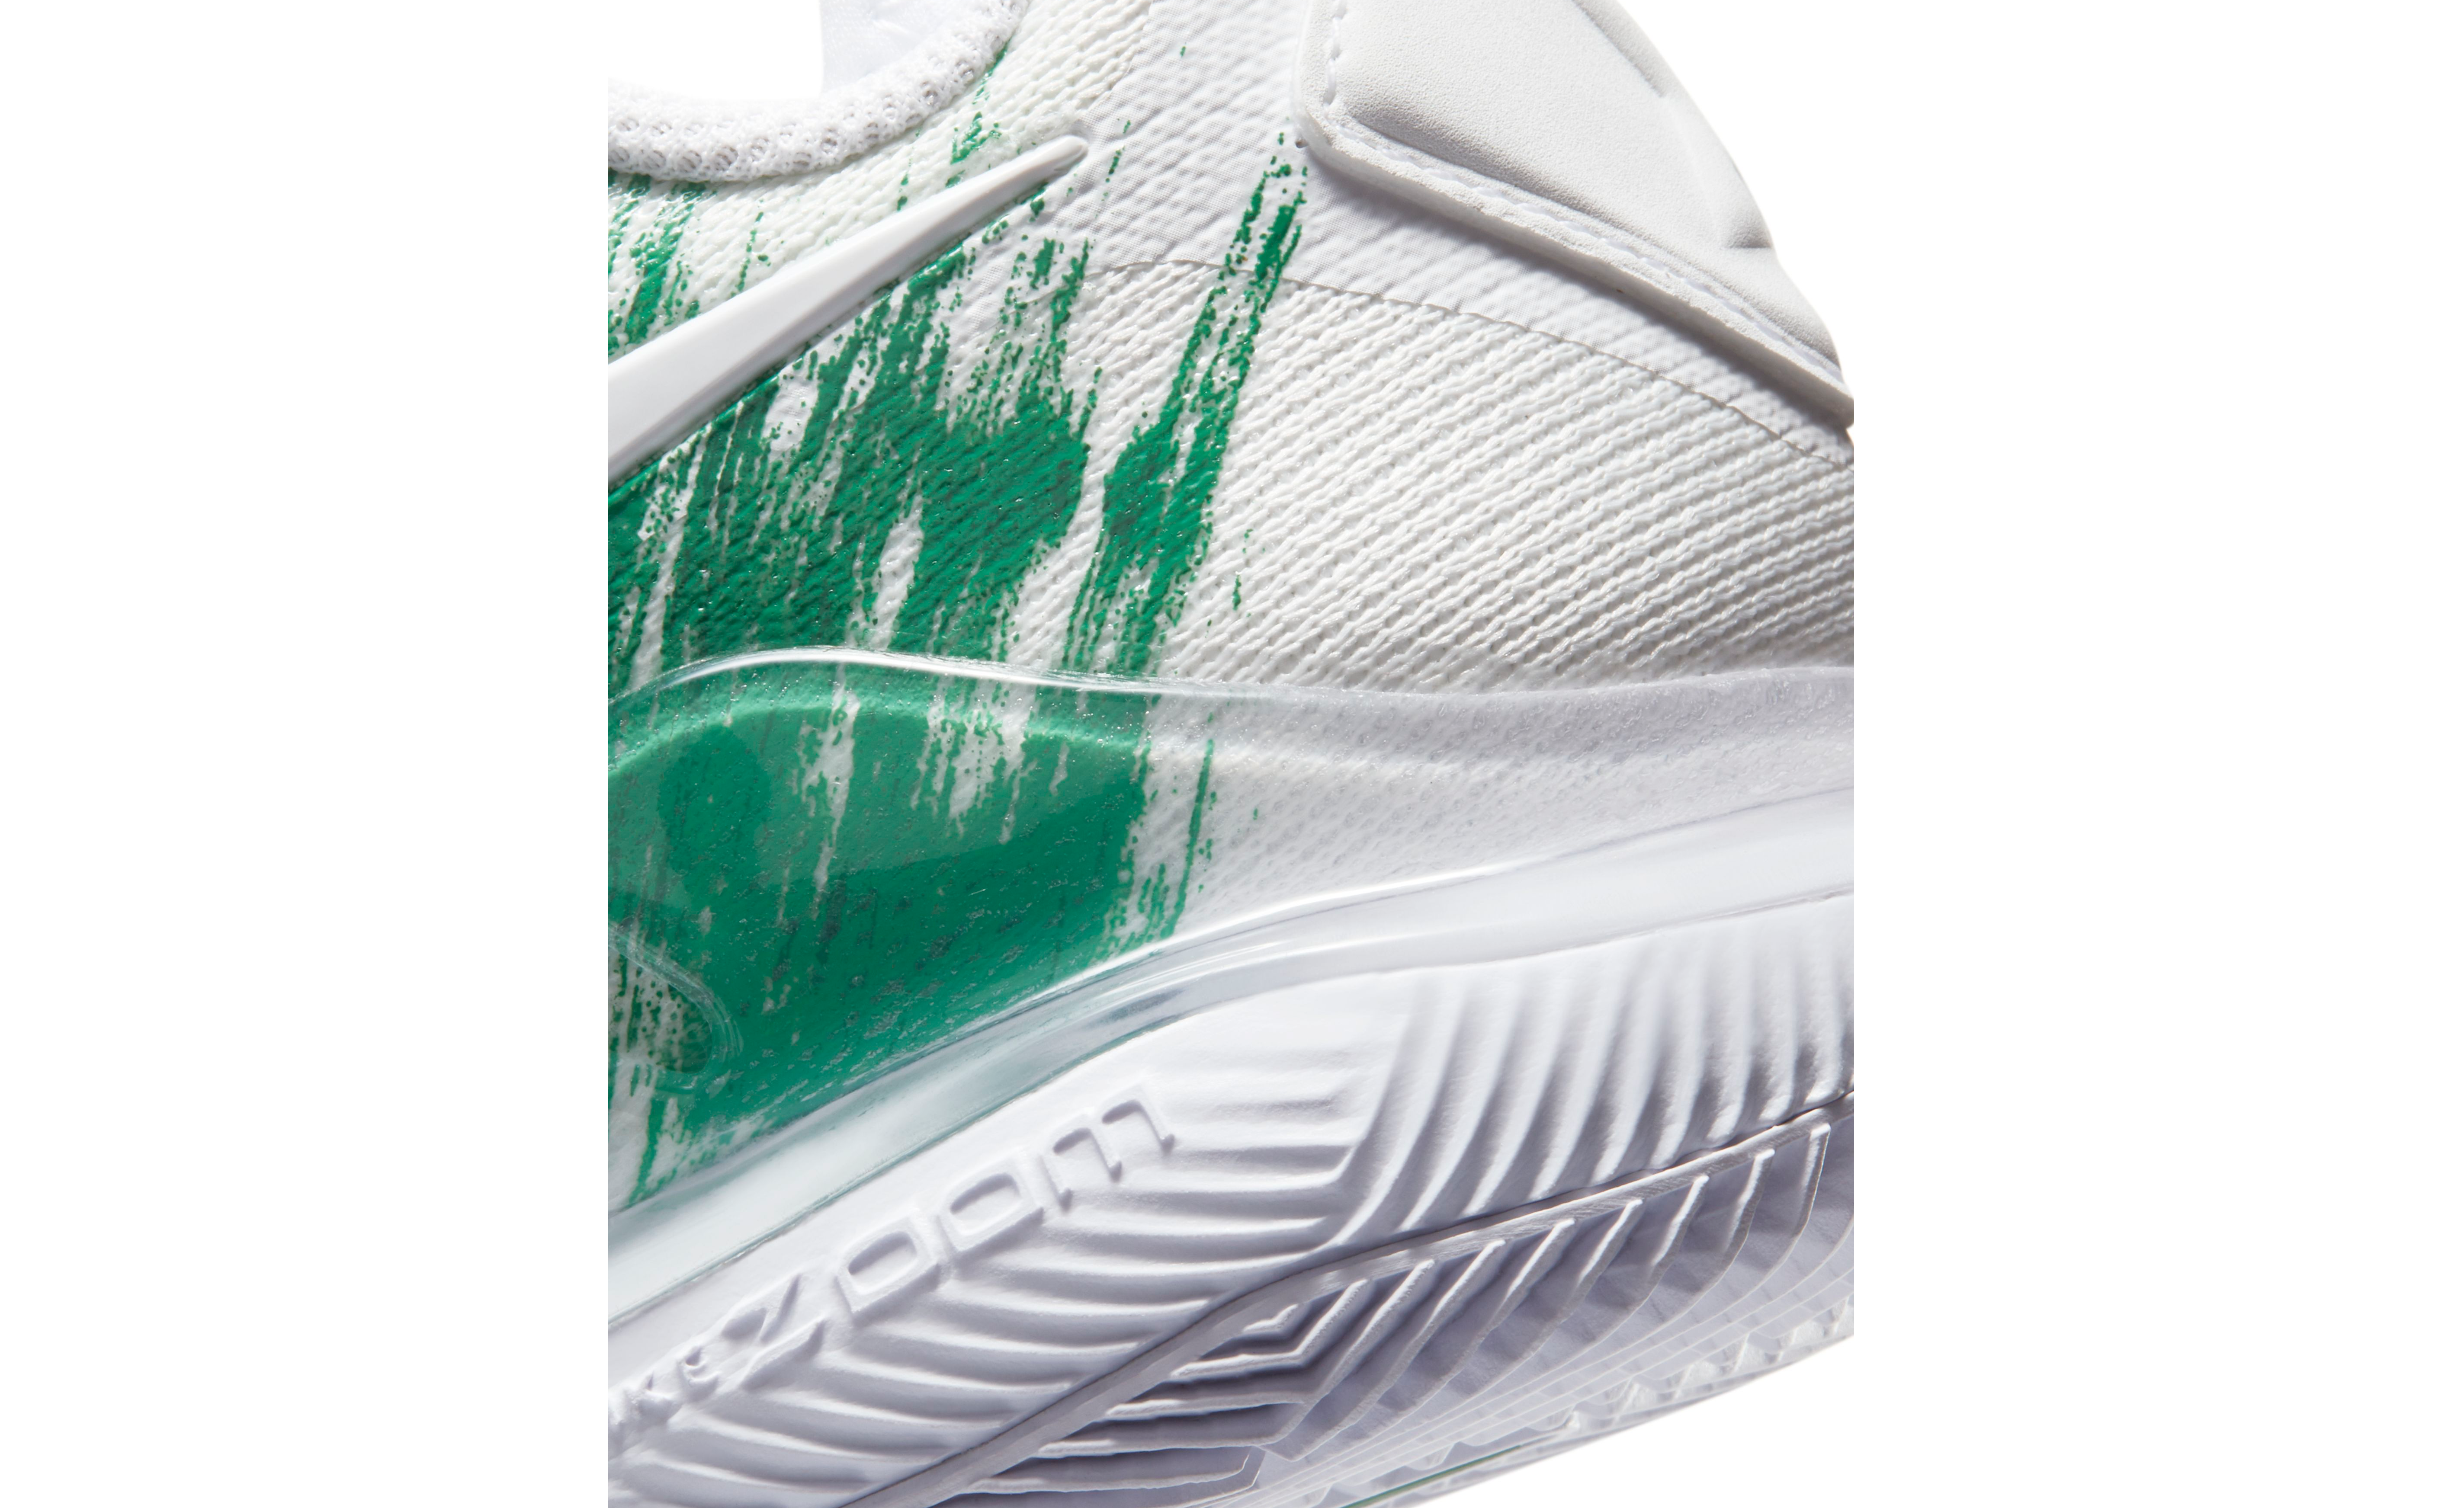 NikeCourt Air Zoom Vapor X Knit White / Clover / Saturated Green / White